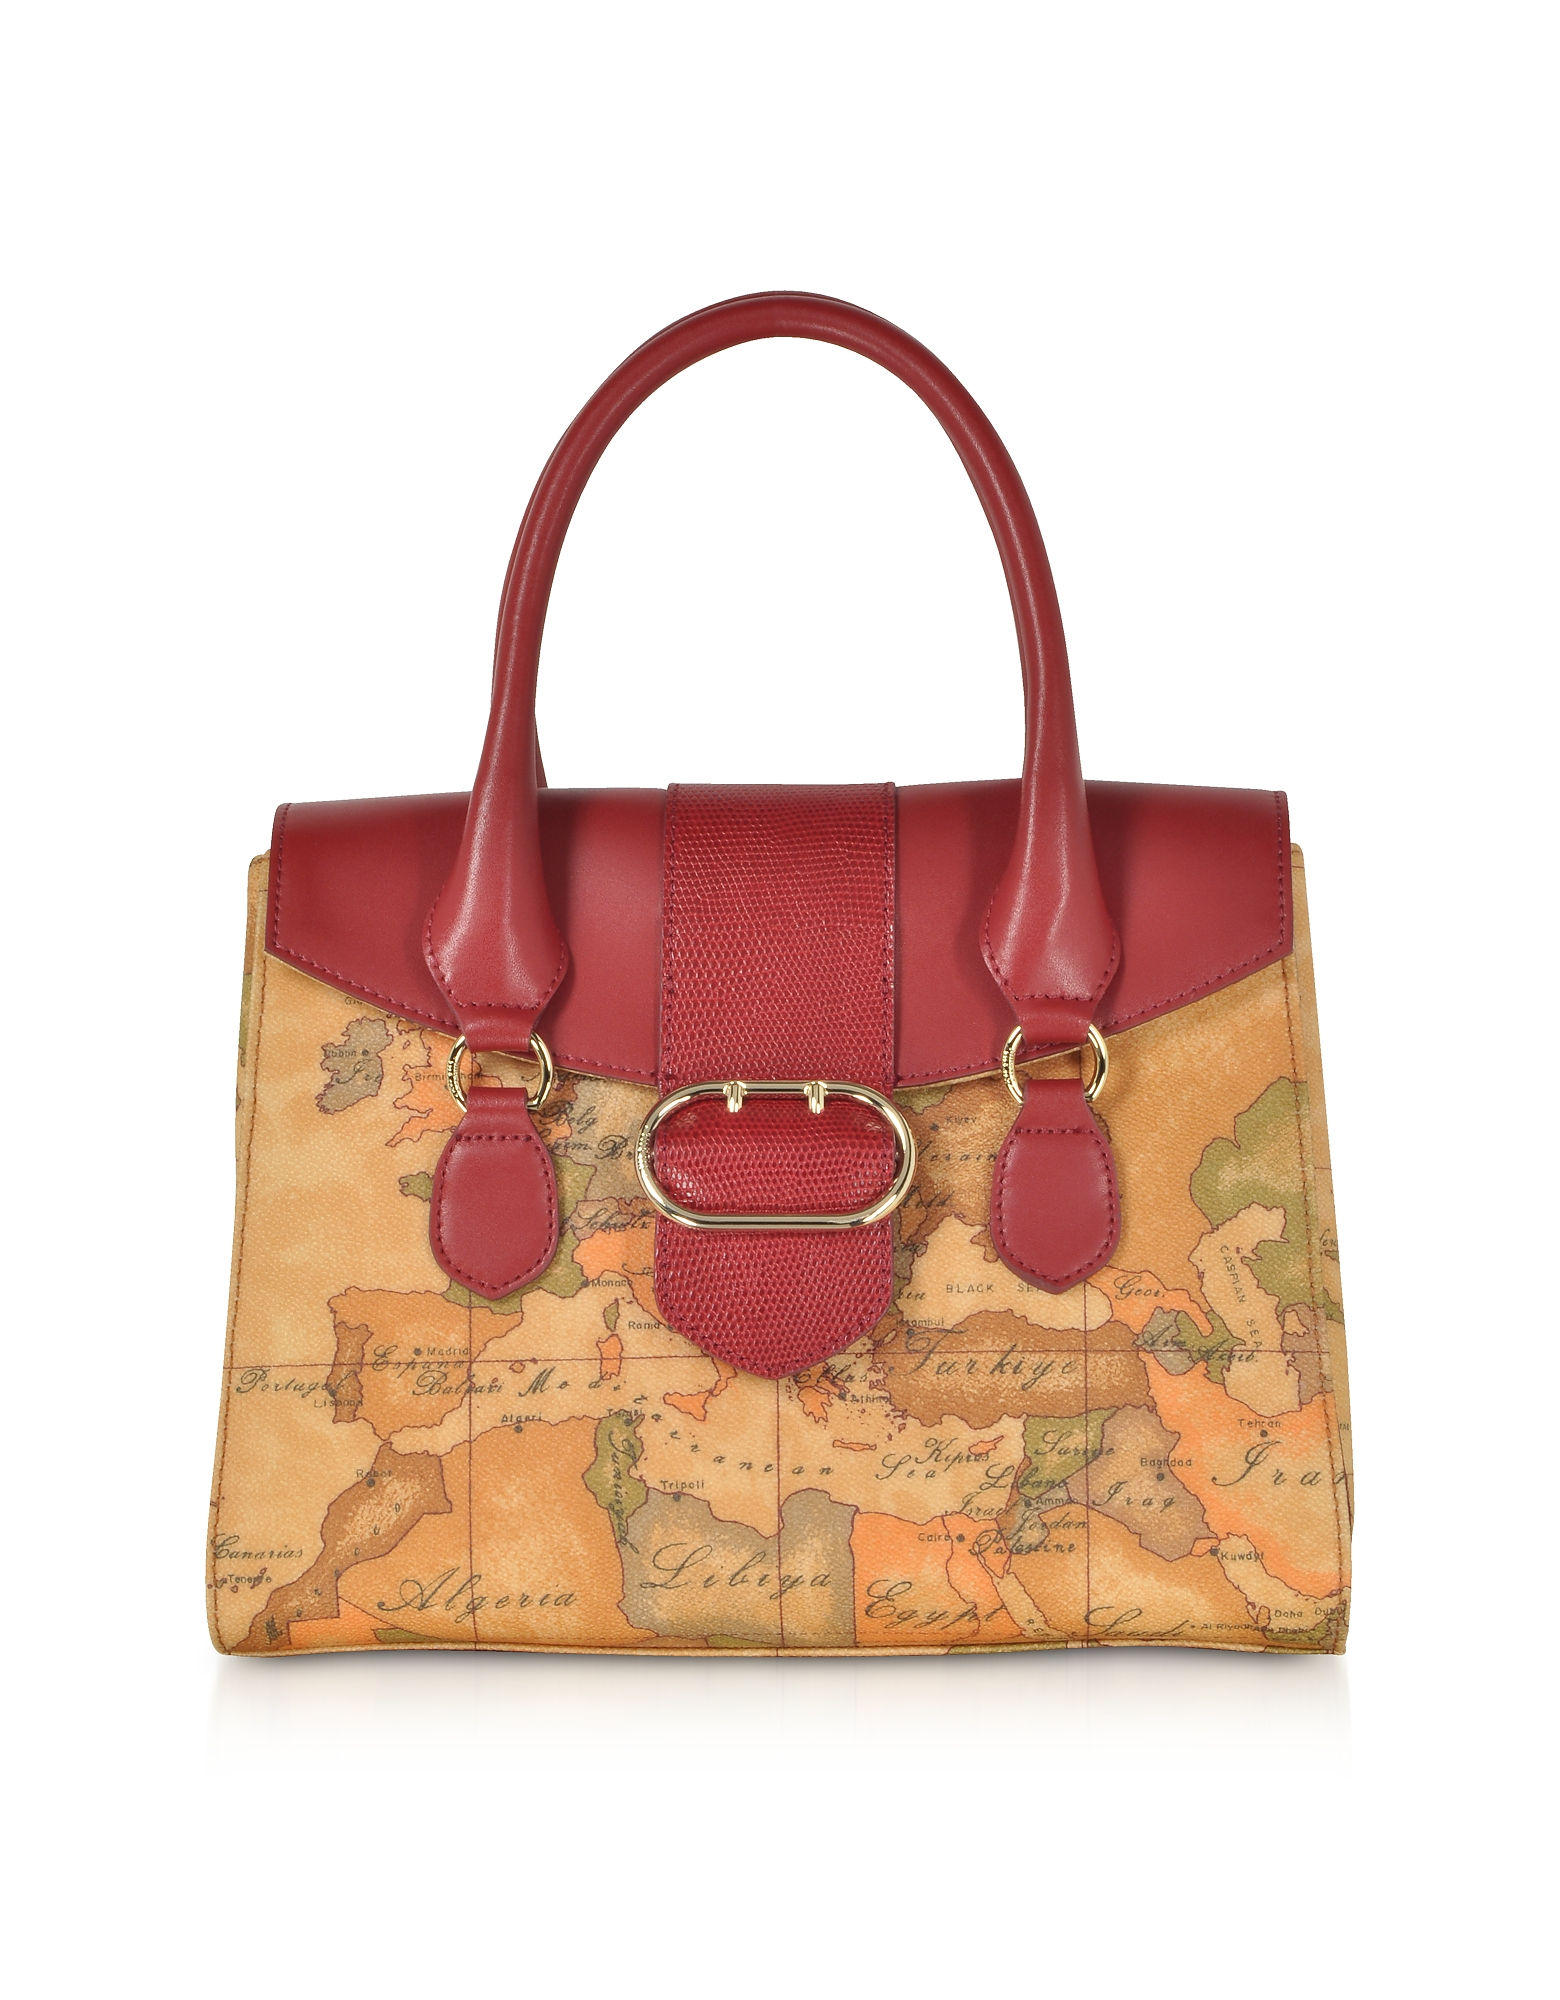 ALVIERO MARTINI 1A CLASSE WONDER GEO SATCHEL BAG